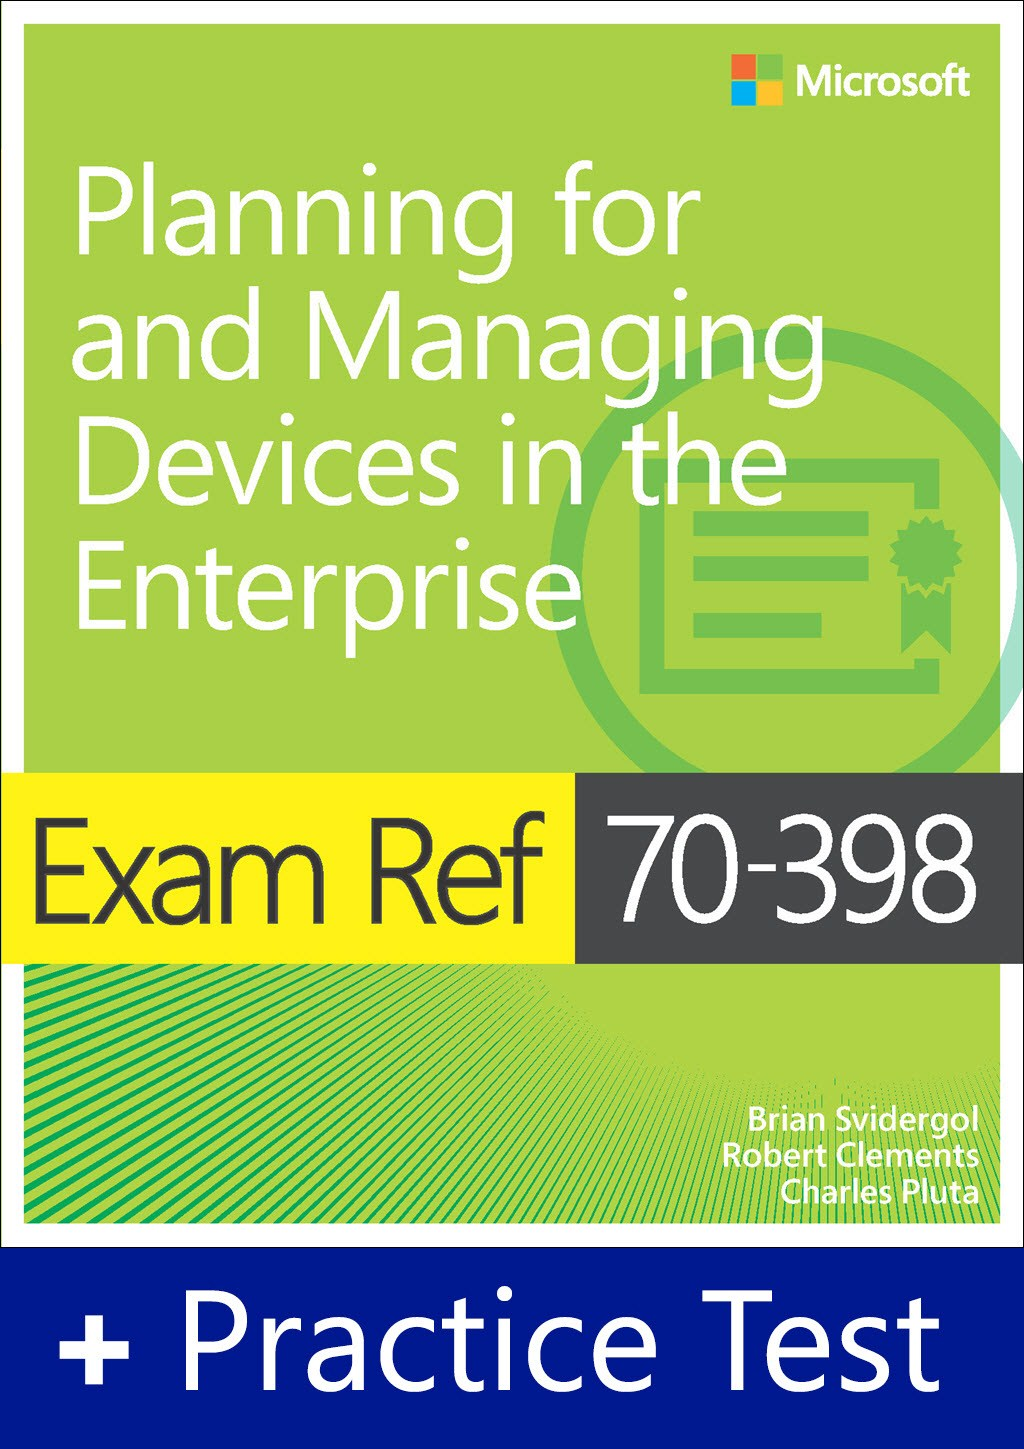 Exam Ref 70-398 Planning for and Managing Devices in the Enterprise with Practice Test